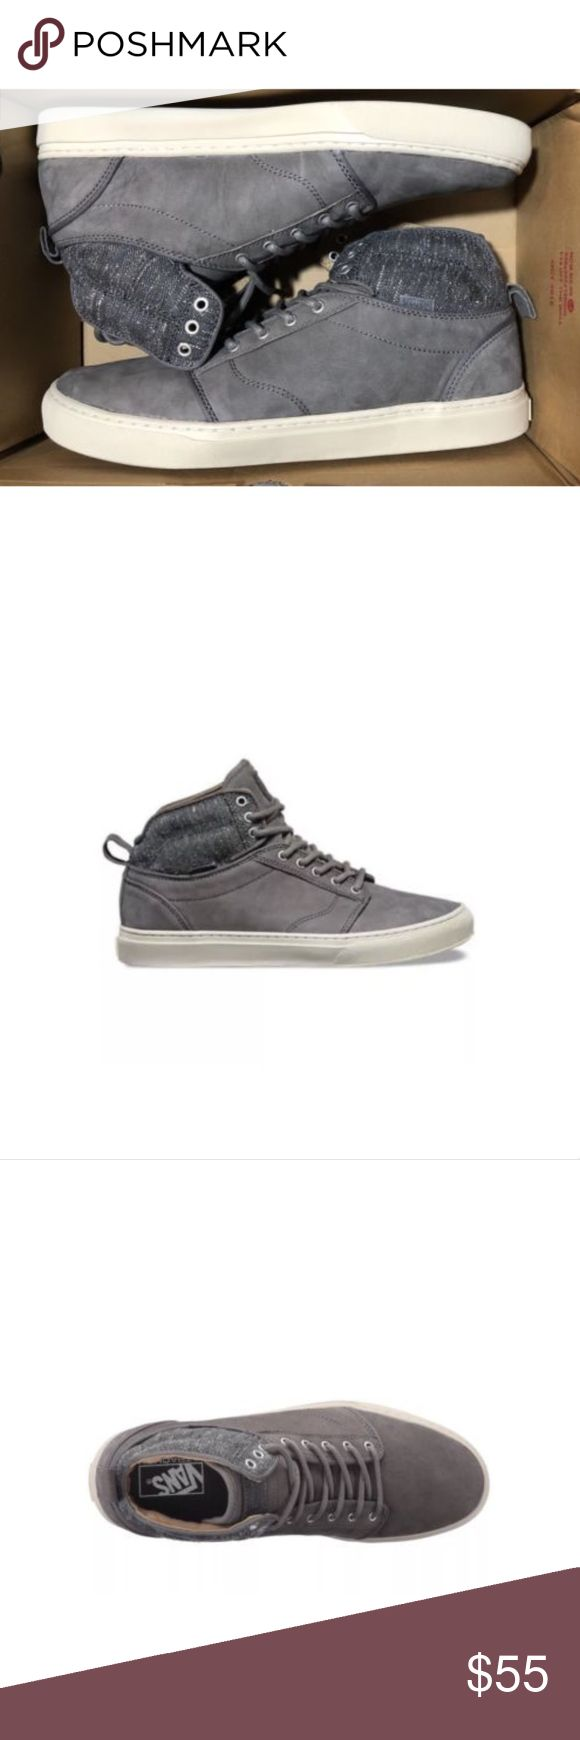 Vans Alomar Tweed Gray White Skate Shoe Mid Top Vans Alomar Tweed Gray White Skate Shoe Mid Top  Size Men 13 Brand new in box Vans Shoes Athletic Shoes